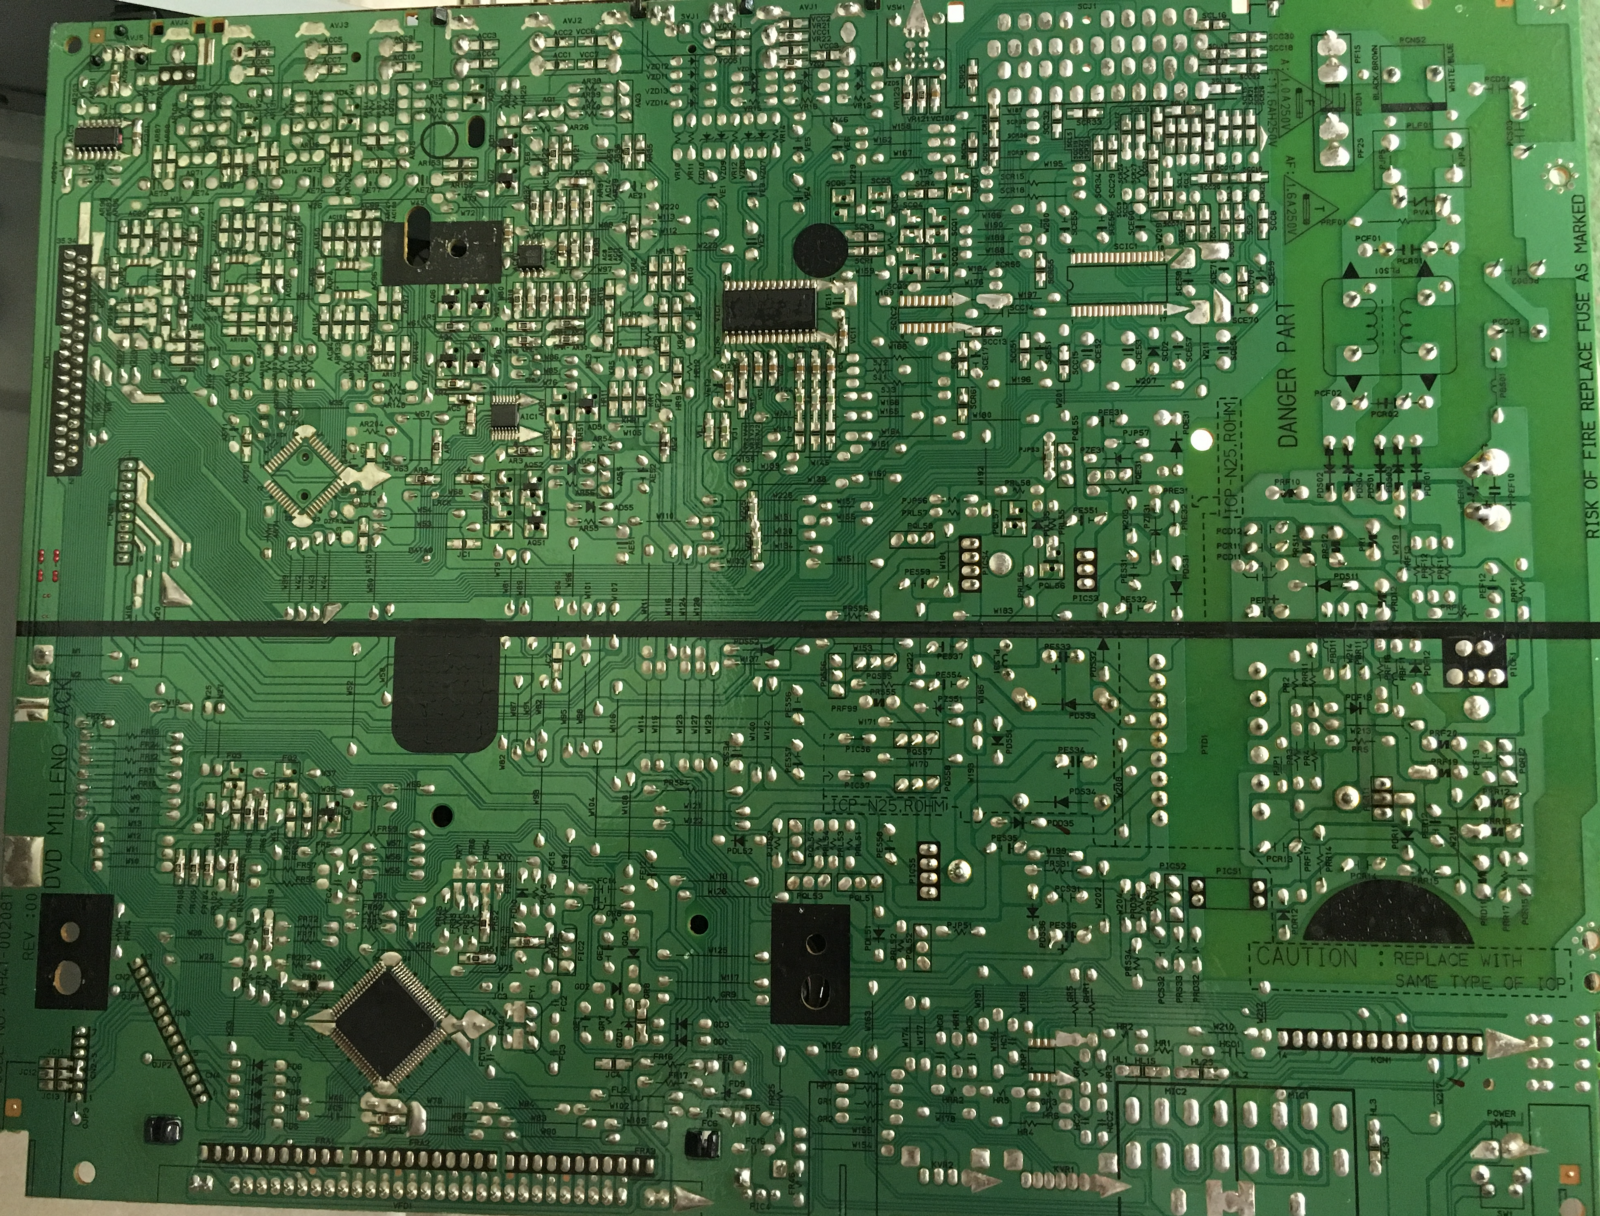 Salvaging A Samsung Dvd M101 Player R X Seger Medium Electronicgadgetslaser Etched Recycled Circuit Board Clock Is Vacuum Fluorescent Display Vfd Built By Micom Controlled The Fic1 Upd780232 Front Controller Examining Reverse Side Of Jack